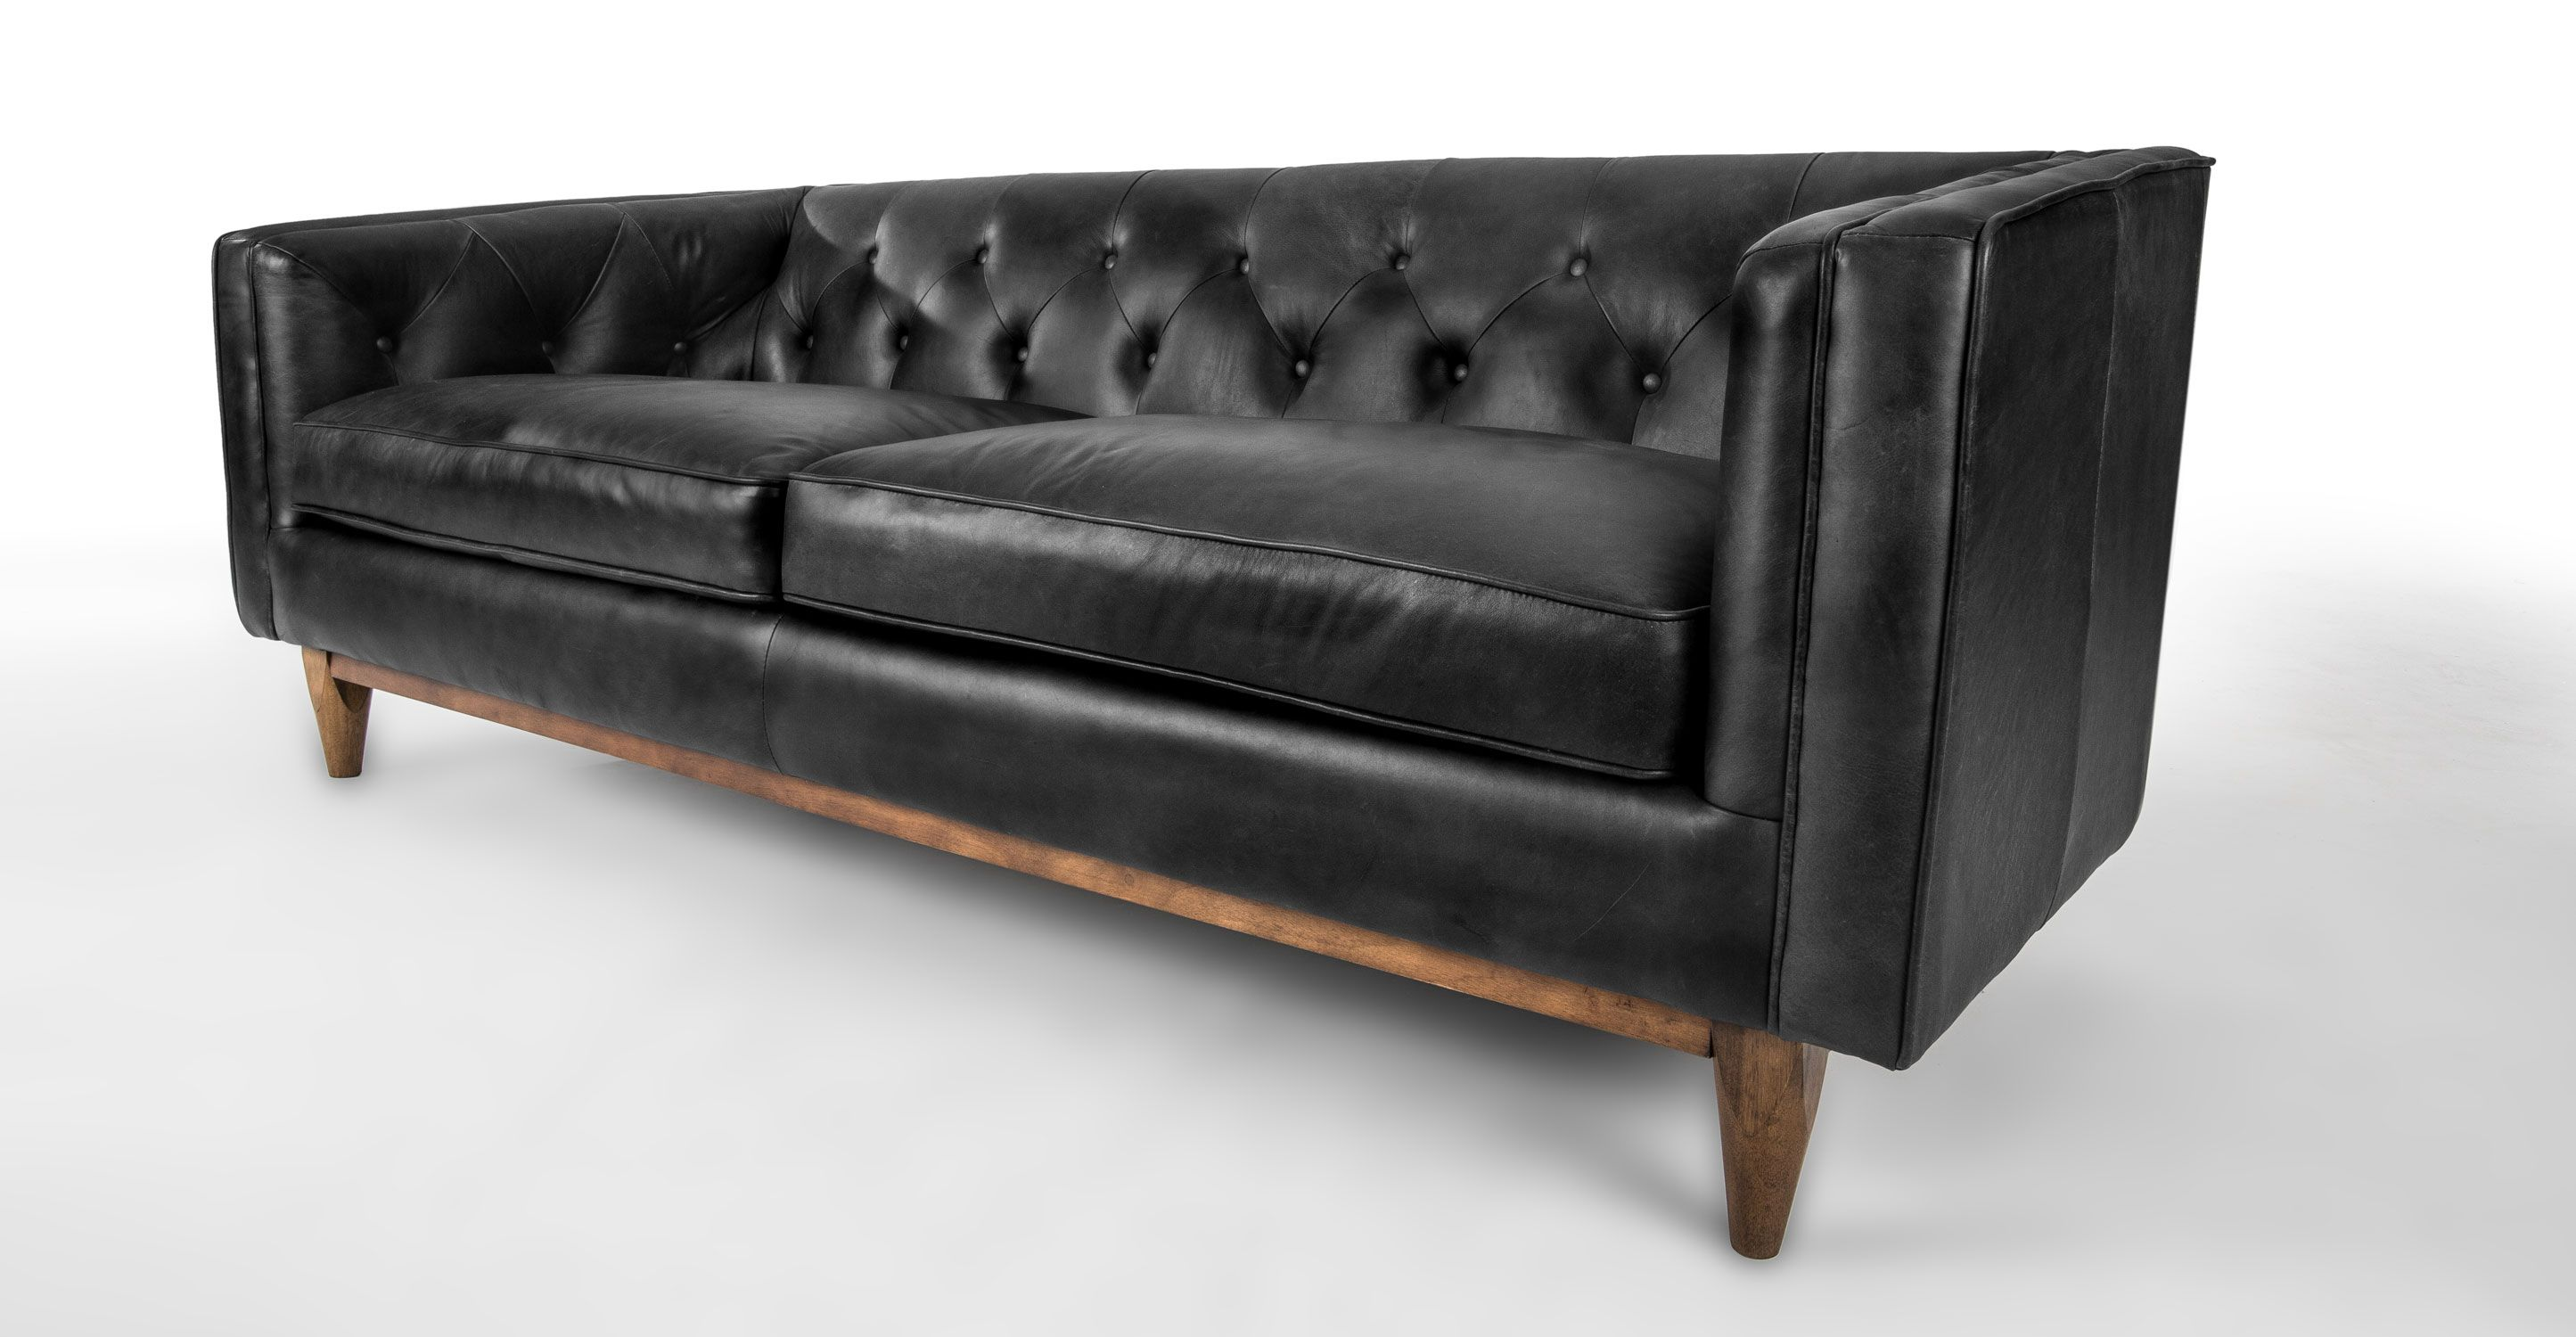 Black leather sofa in walnut wood finish article alcott modern furniture scandinavian Loveseat black